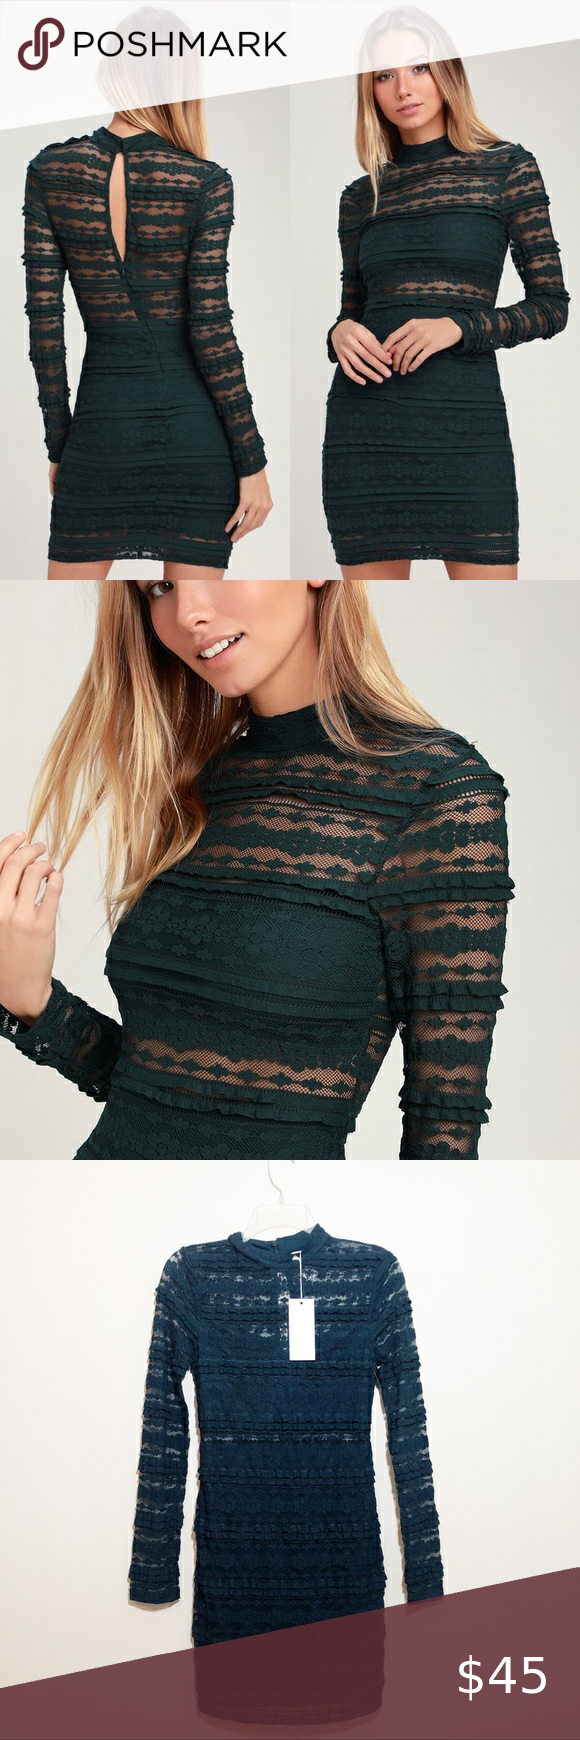 Lulus Return Label : lulus, return, label, LuLus, Reece, Forest, Green, Sleeve, Bodycon, Bodycon,, Lace,, Dress